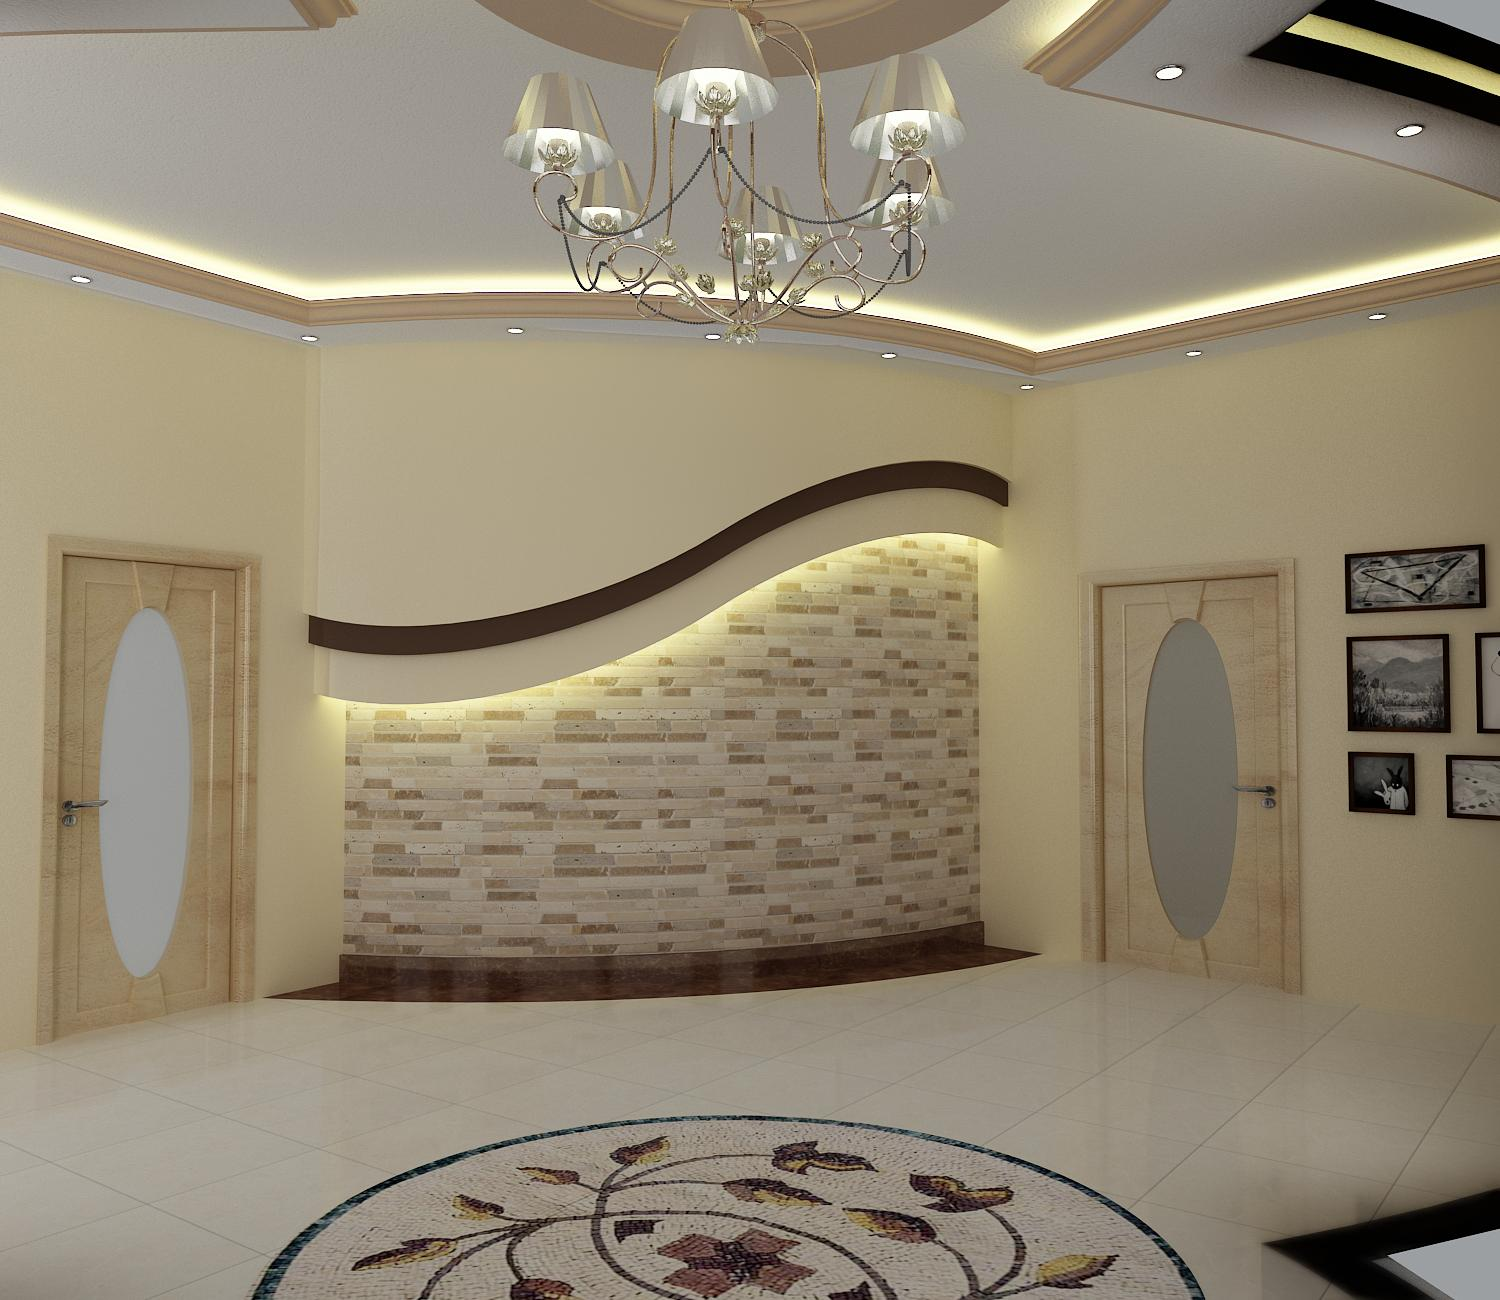 Wasim riaz interior design for a arabic mujlis for Internal design